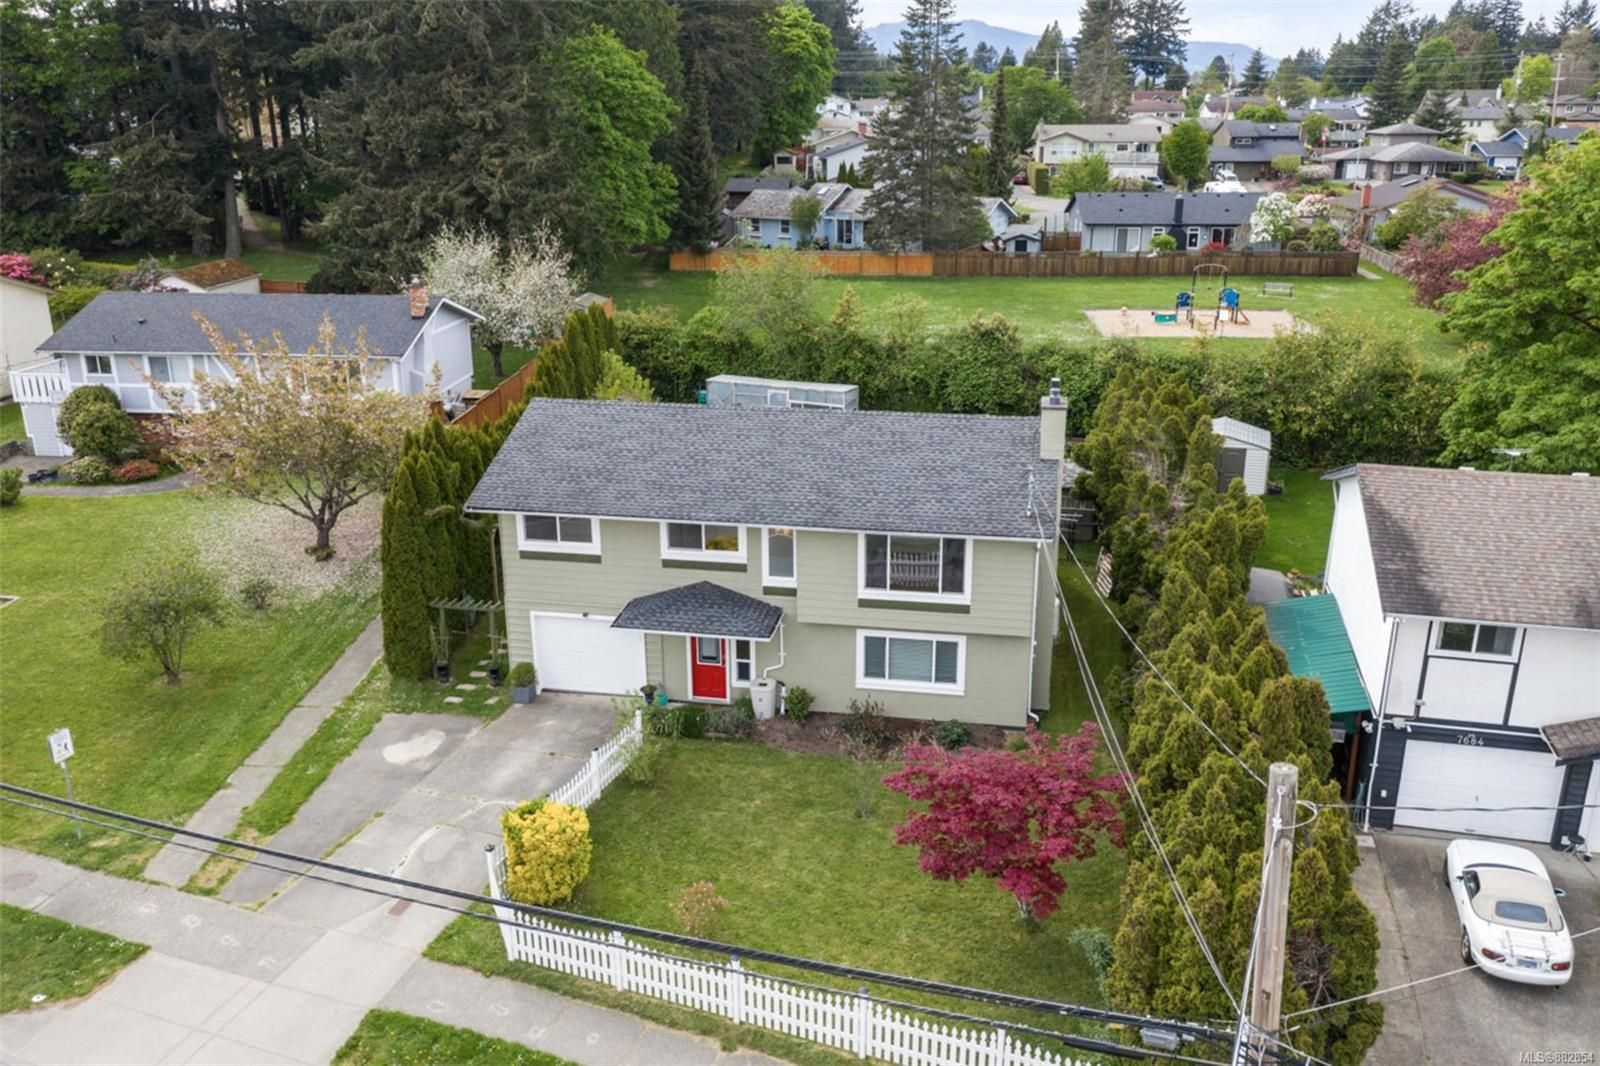 Main Photo: 7678 East Saanich Rd in : CS Saanichton House for sale (Central Saanich)  : MLS®# 882854